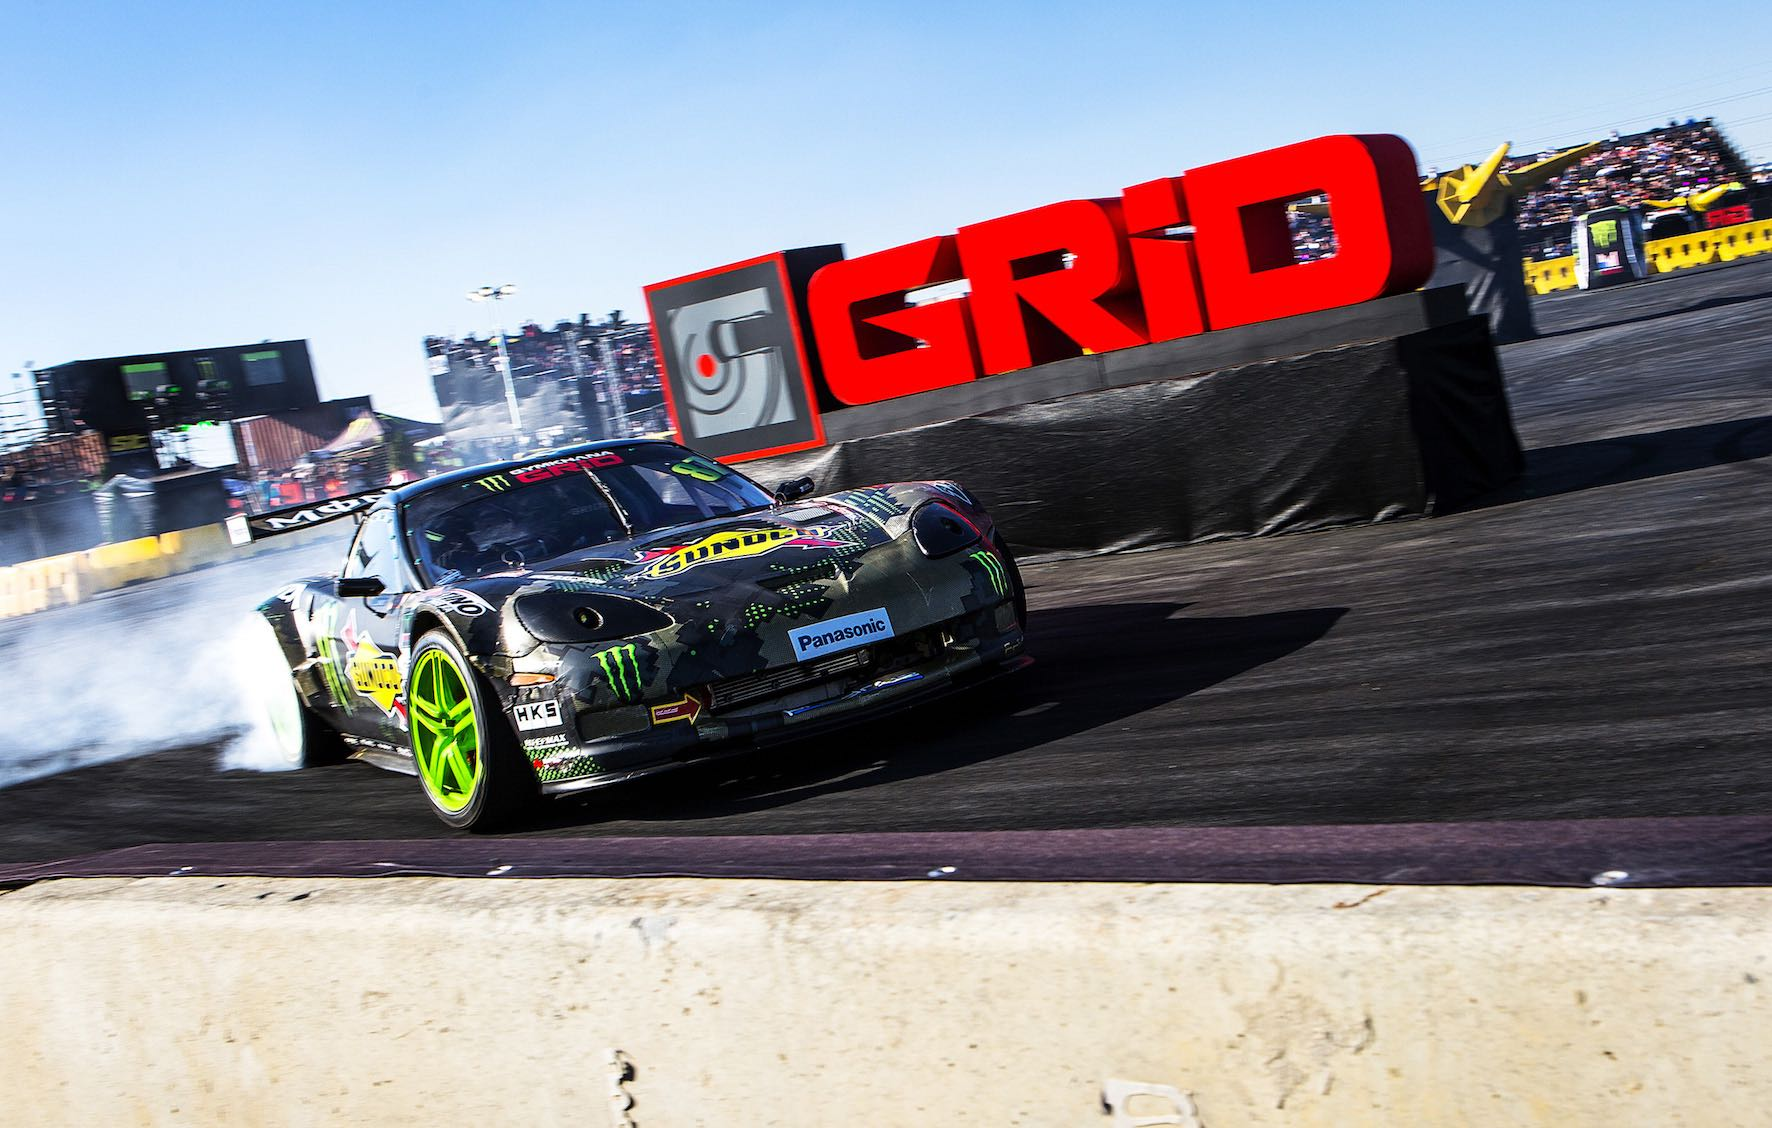 Daigo Saito winning the RWD class at Gymkhana GRiD 2018